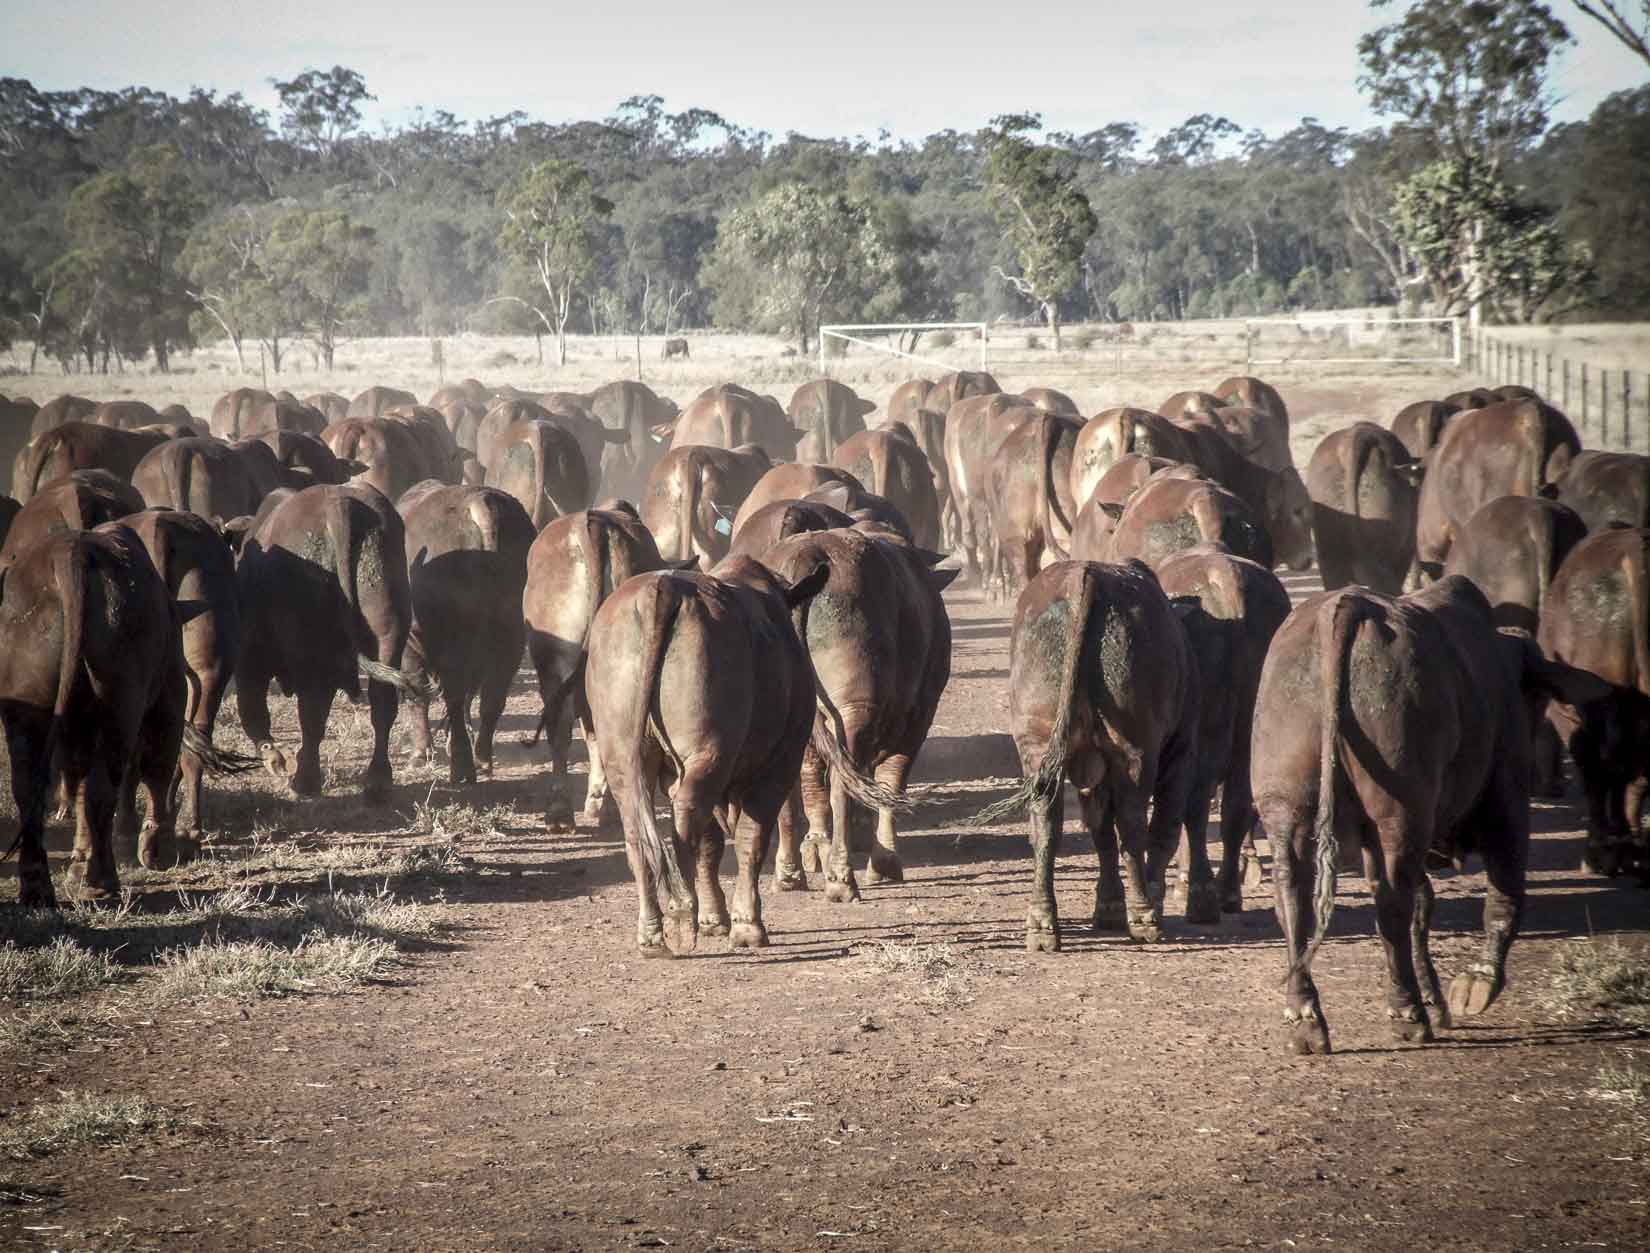 Glen Fosslyn Bulls  Ready to work for you